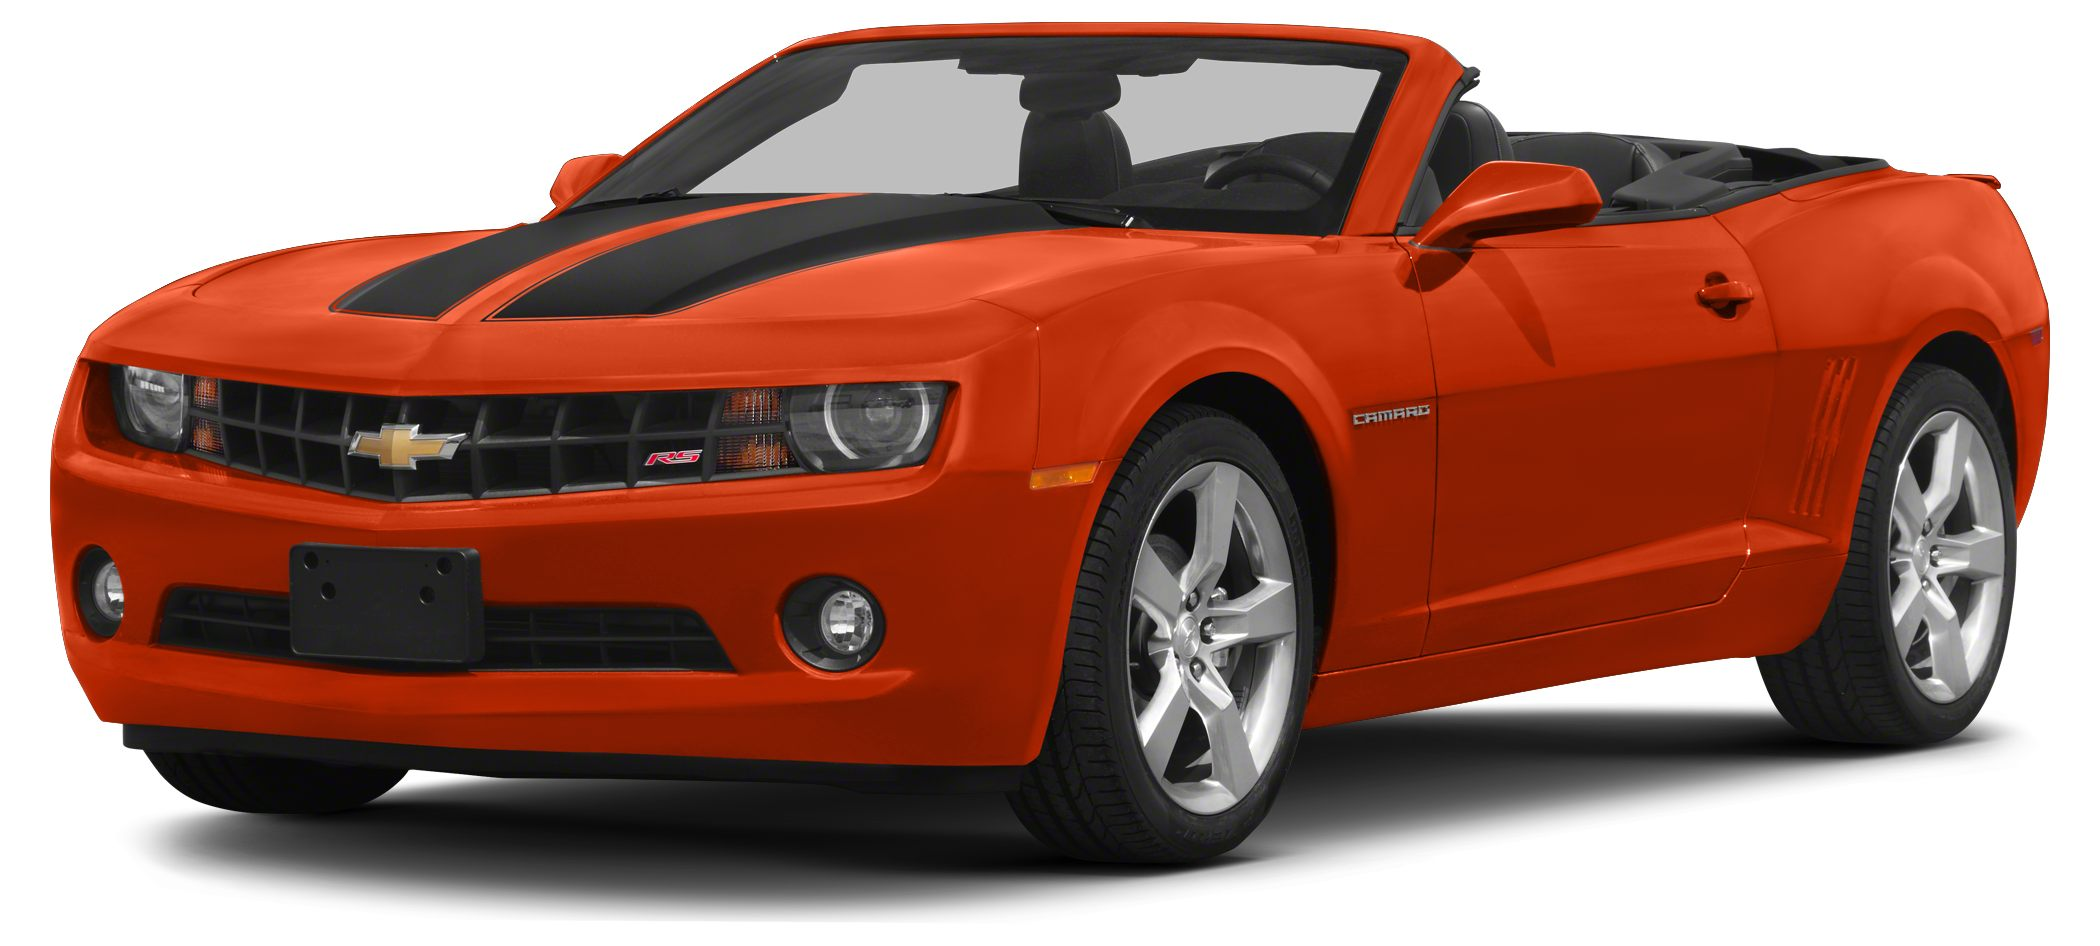 2013 Chevrolet Camaro LT w2LT AWESOME CONVERTIBLE LEATHER AND LOADED MULLINAX CERTIFIED PRE-